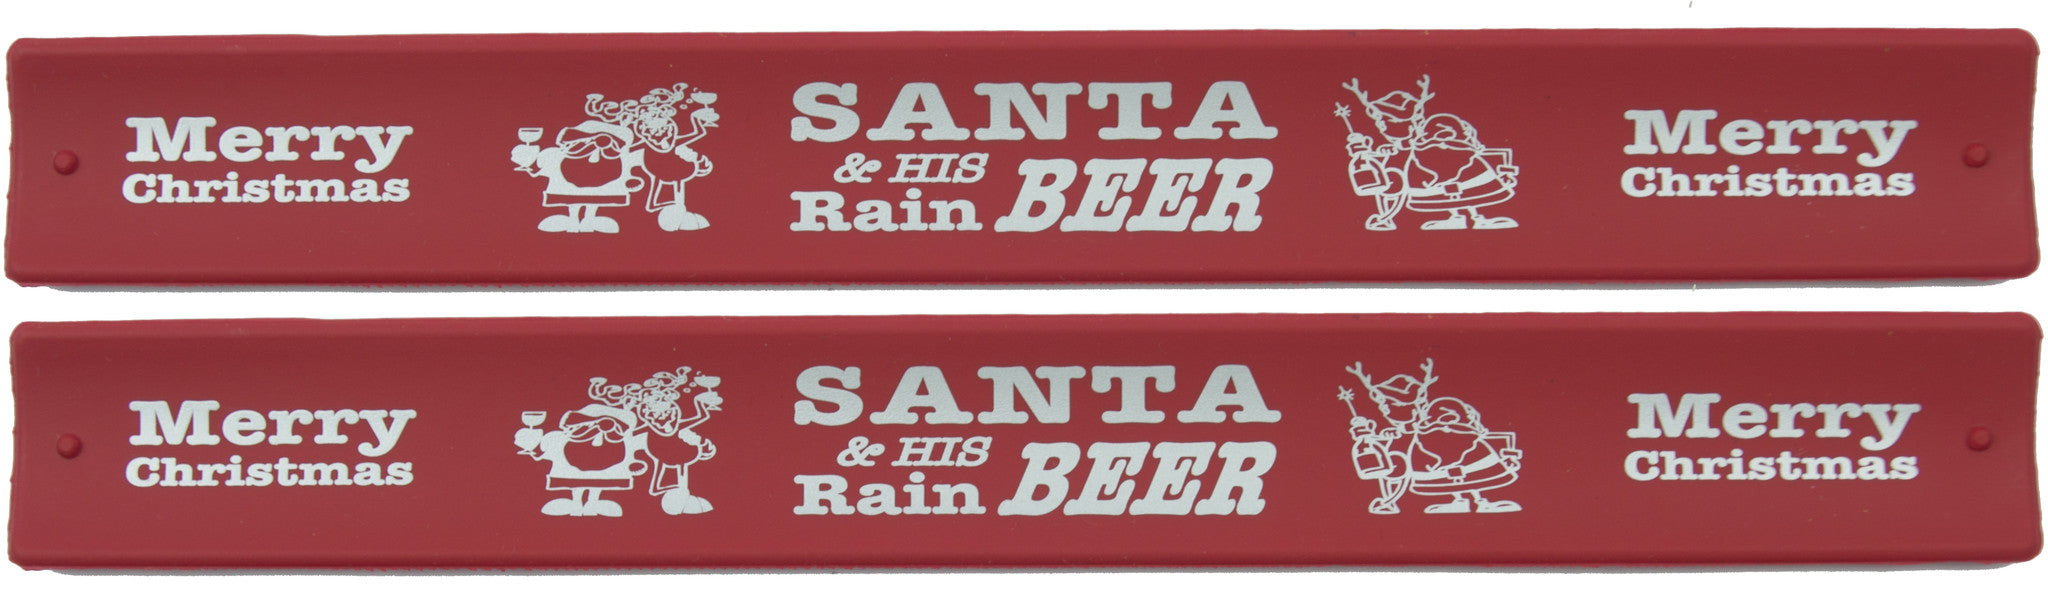 Holidays Slap Bands  - Santa And His Rainbeer